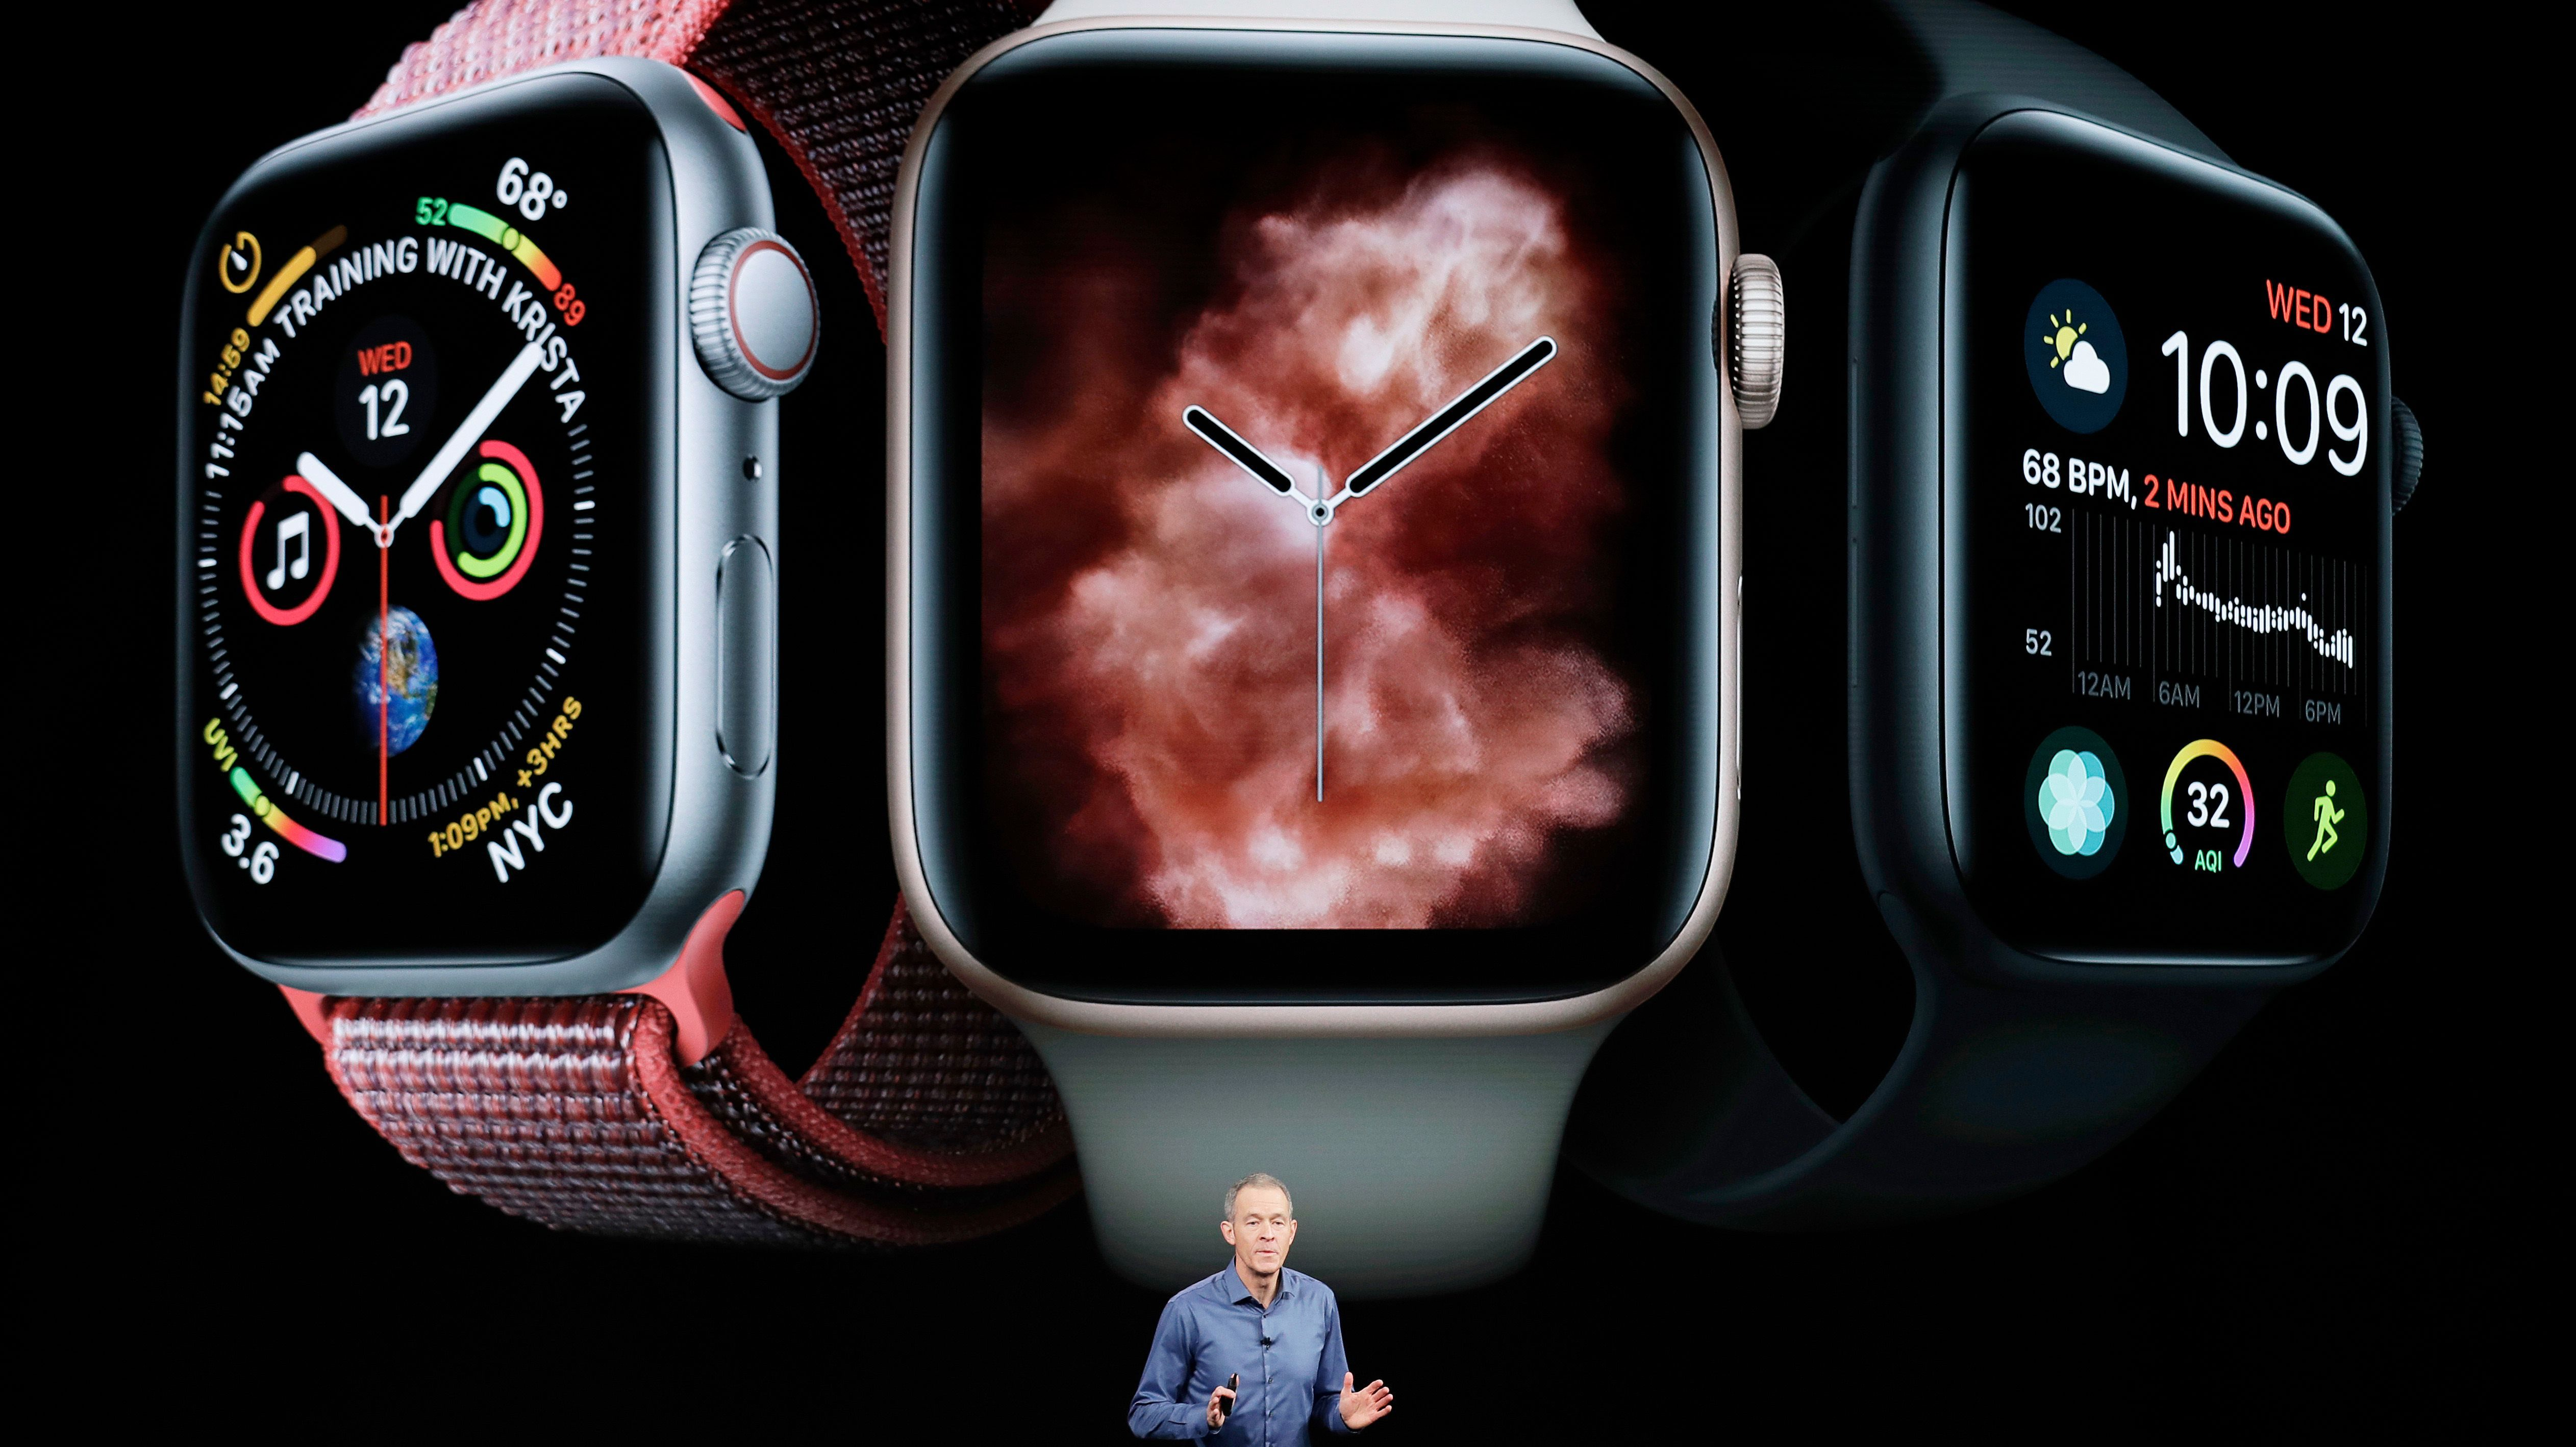 20903af2 The new heart-monitoring capabilities on the Apple Watch aren't all that  impressive